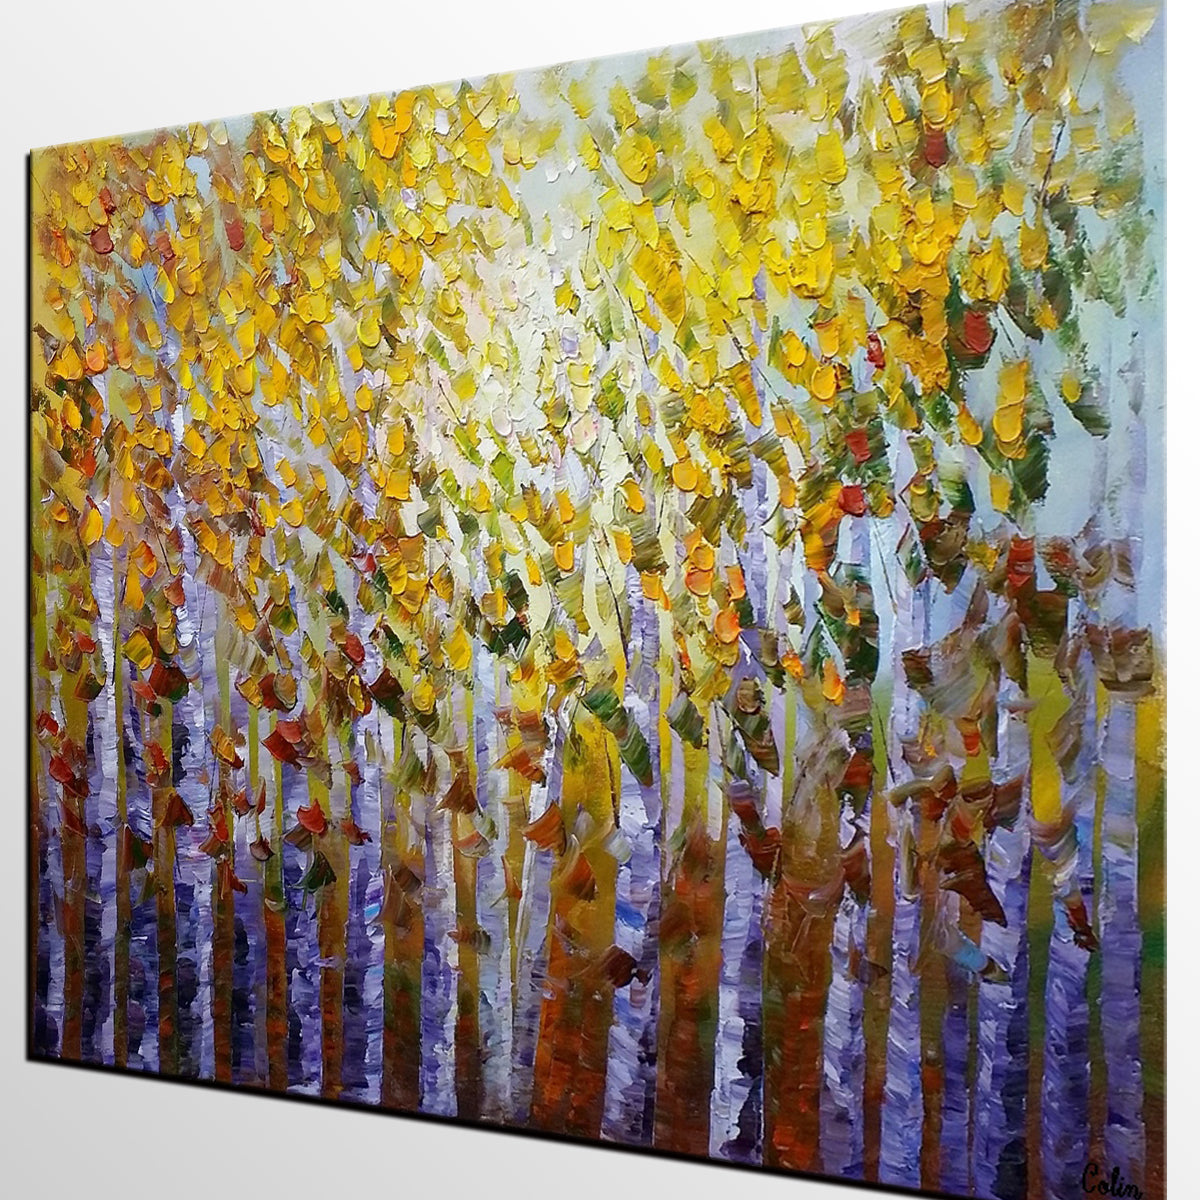 Forest Tree Painting, Landscape Painting, Rustic Wall Art, Bedroom Wall Art, Abstract Art, Large Abstract Painting, Original Oil Painting